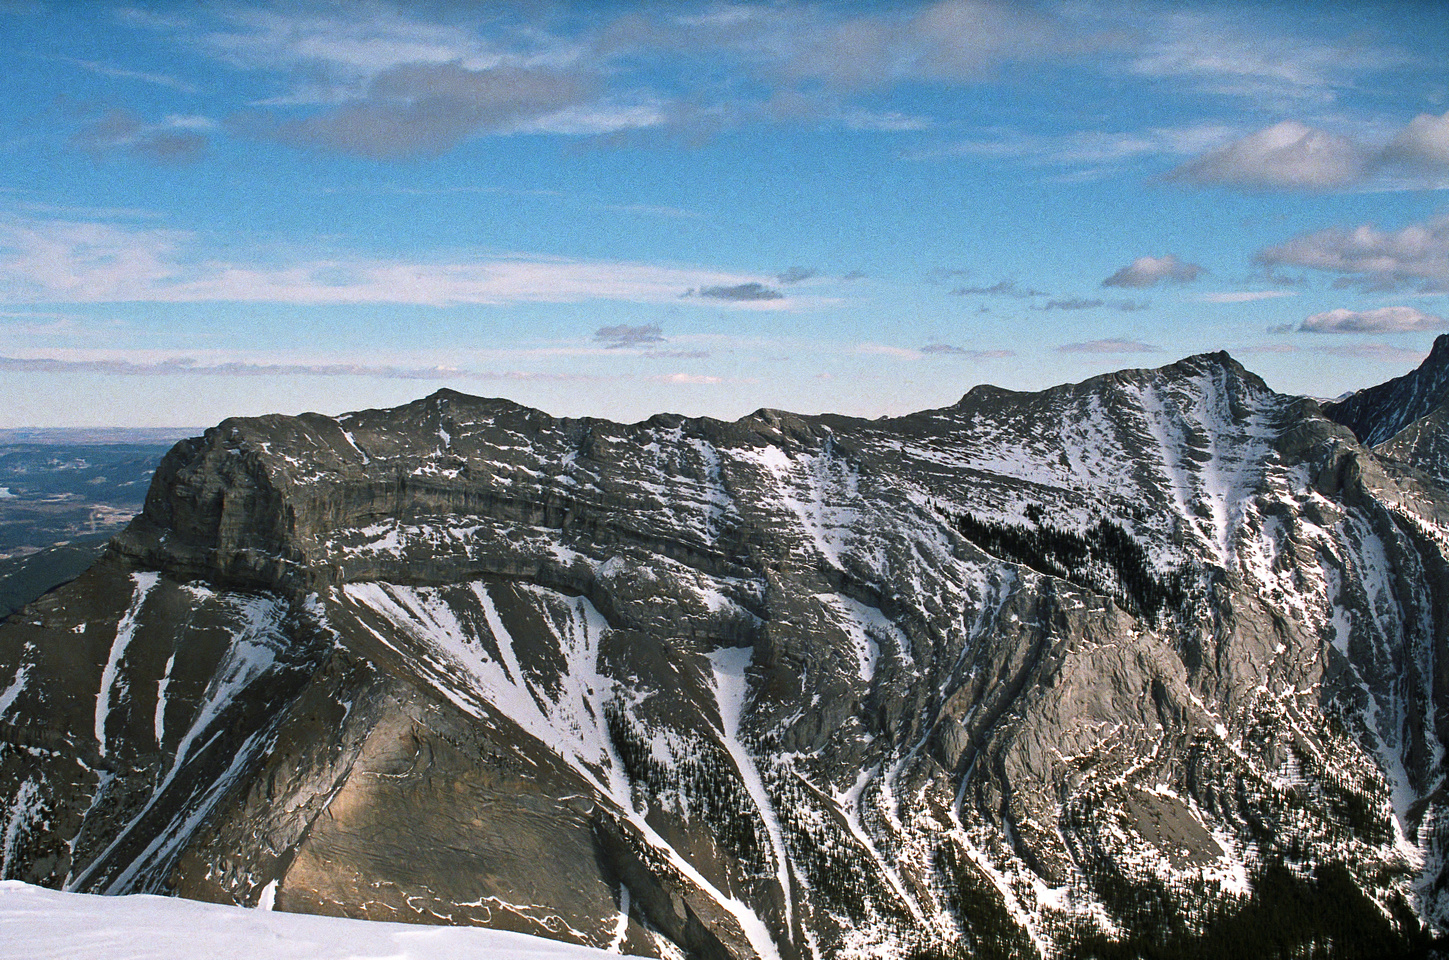 Mount McGillivray lies to the east.